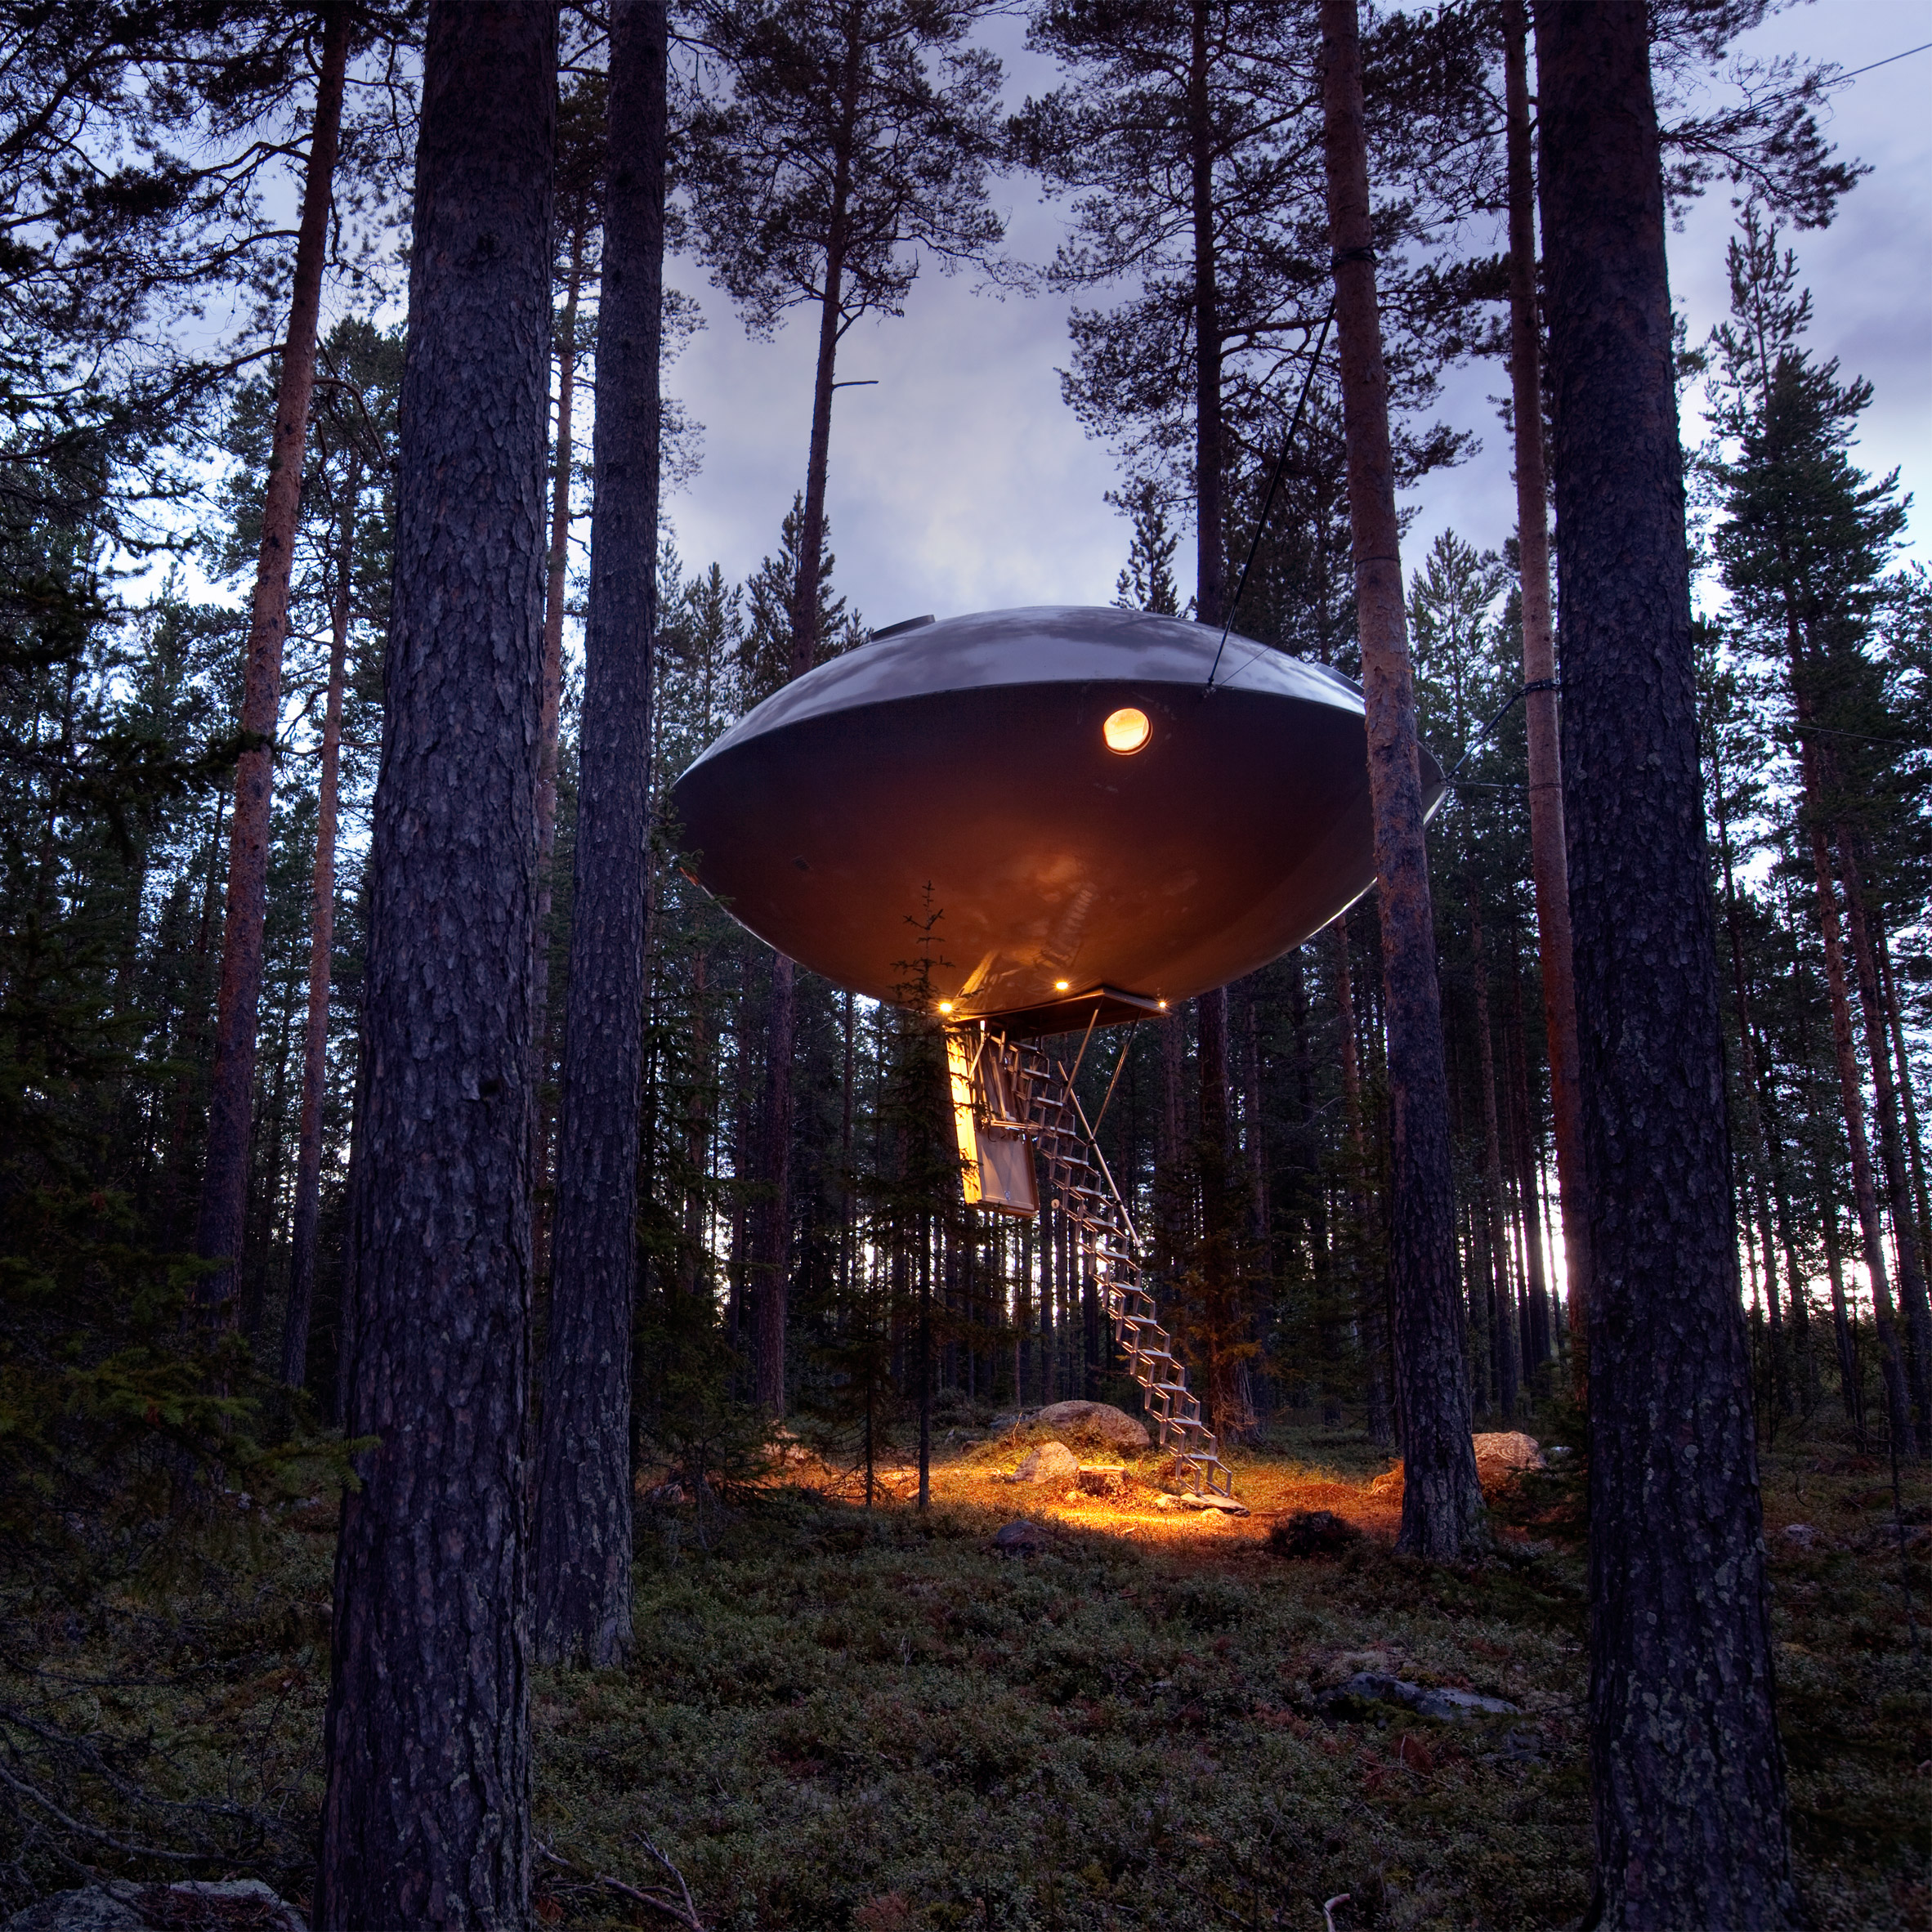 3 Incredible Treehouses You Will Want to Sleep in at Sweeden's Tree Hotel treehotel 3 Awesome Treehouses You Will Want to Sleep in at Sweden's Treehotel sweeden tree hotel architecture tree houses 2